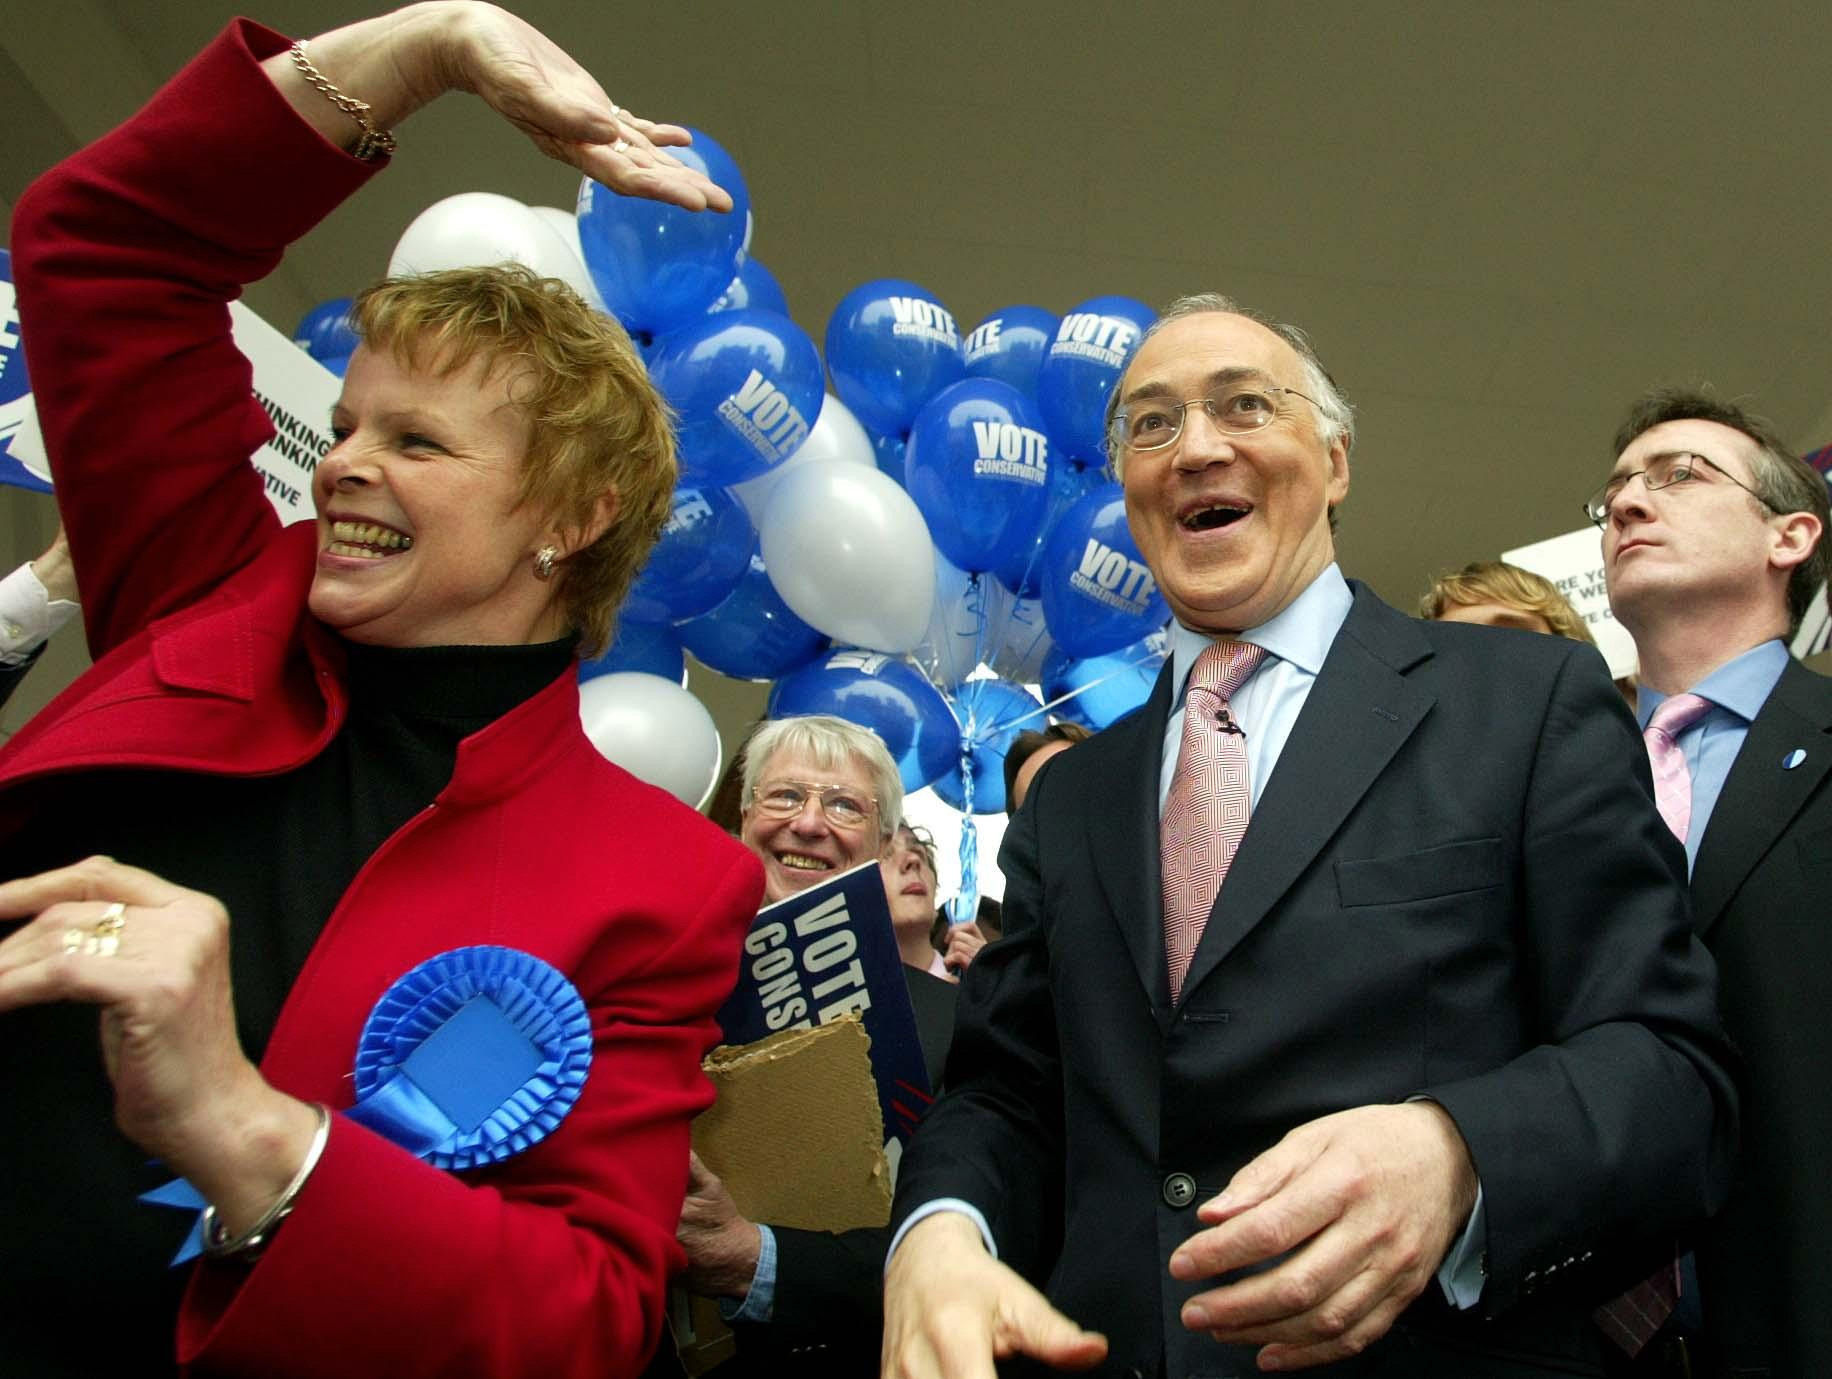 Former Conservative leader Michael Howard and Anne Milton during the last day of campaigning for the 2005 general election